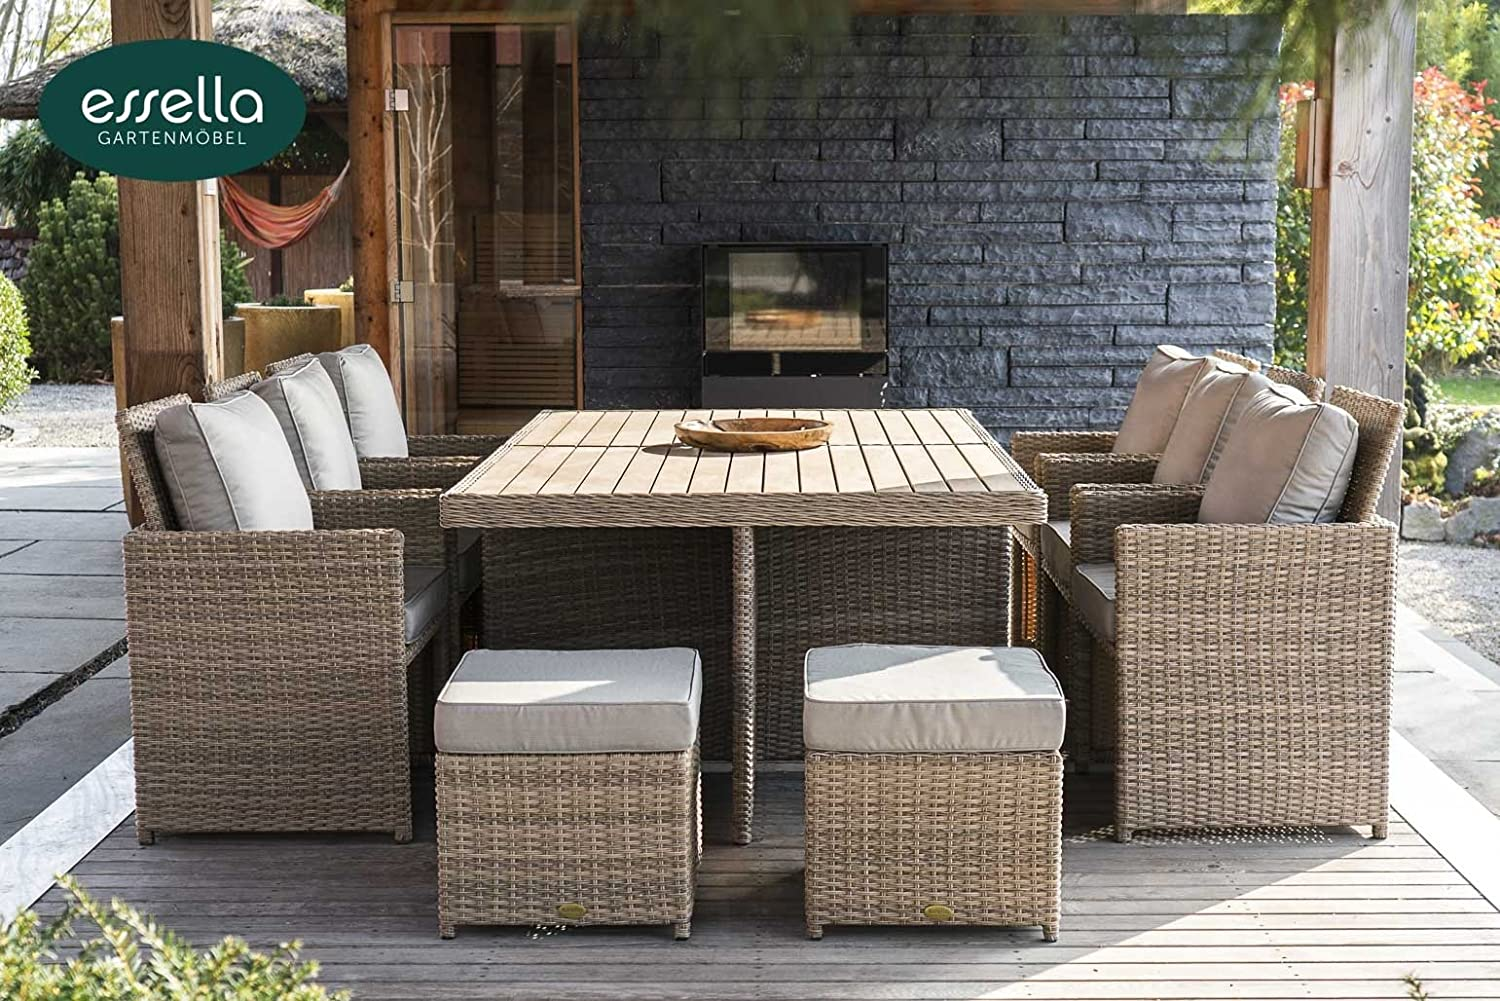 polyrattan sitzgruppe vienna 6 personen polywood rundgeflecht hellbraun gartenm bel. Black Bedroom Furniture Sets. Home Design Ideas